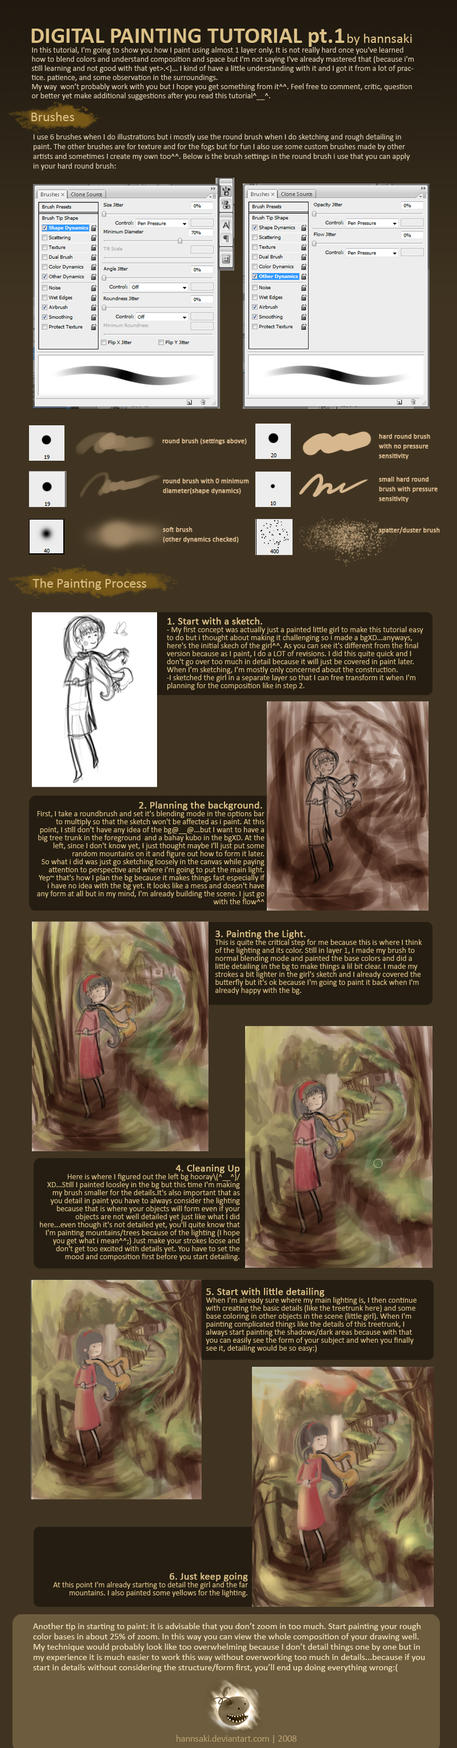 digital painting tutorial pt 1 by hannsaki on deviantart